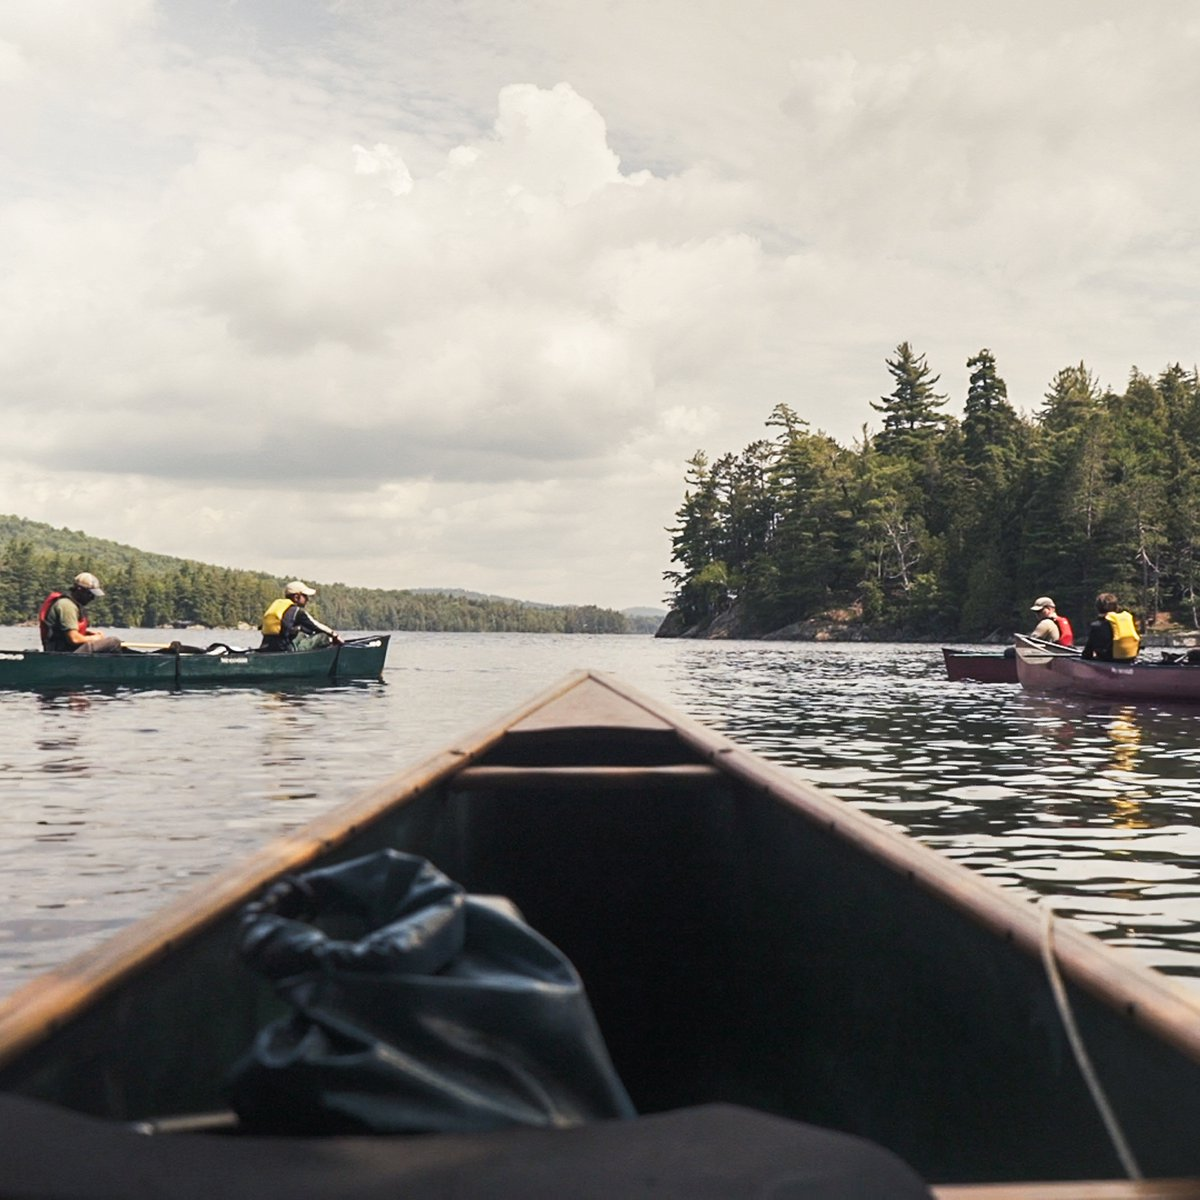 several canoes on calm lake in the Adirondacks as seen from the bow of a canoe